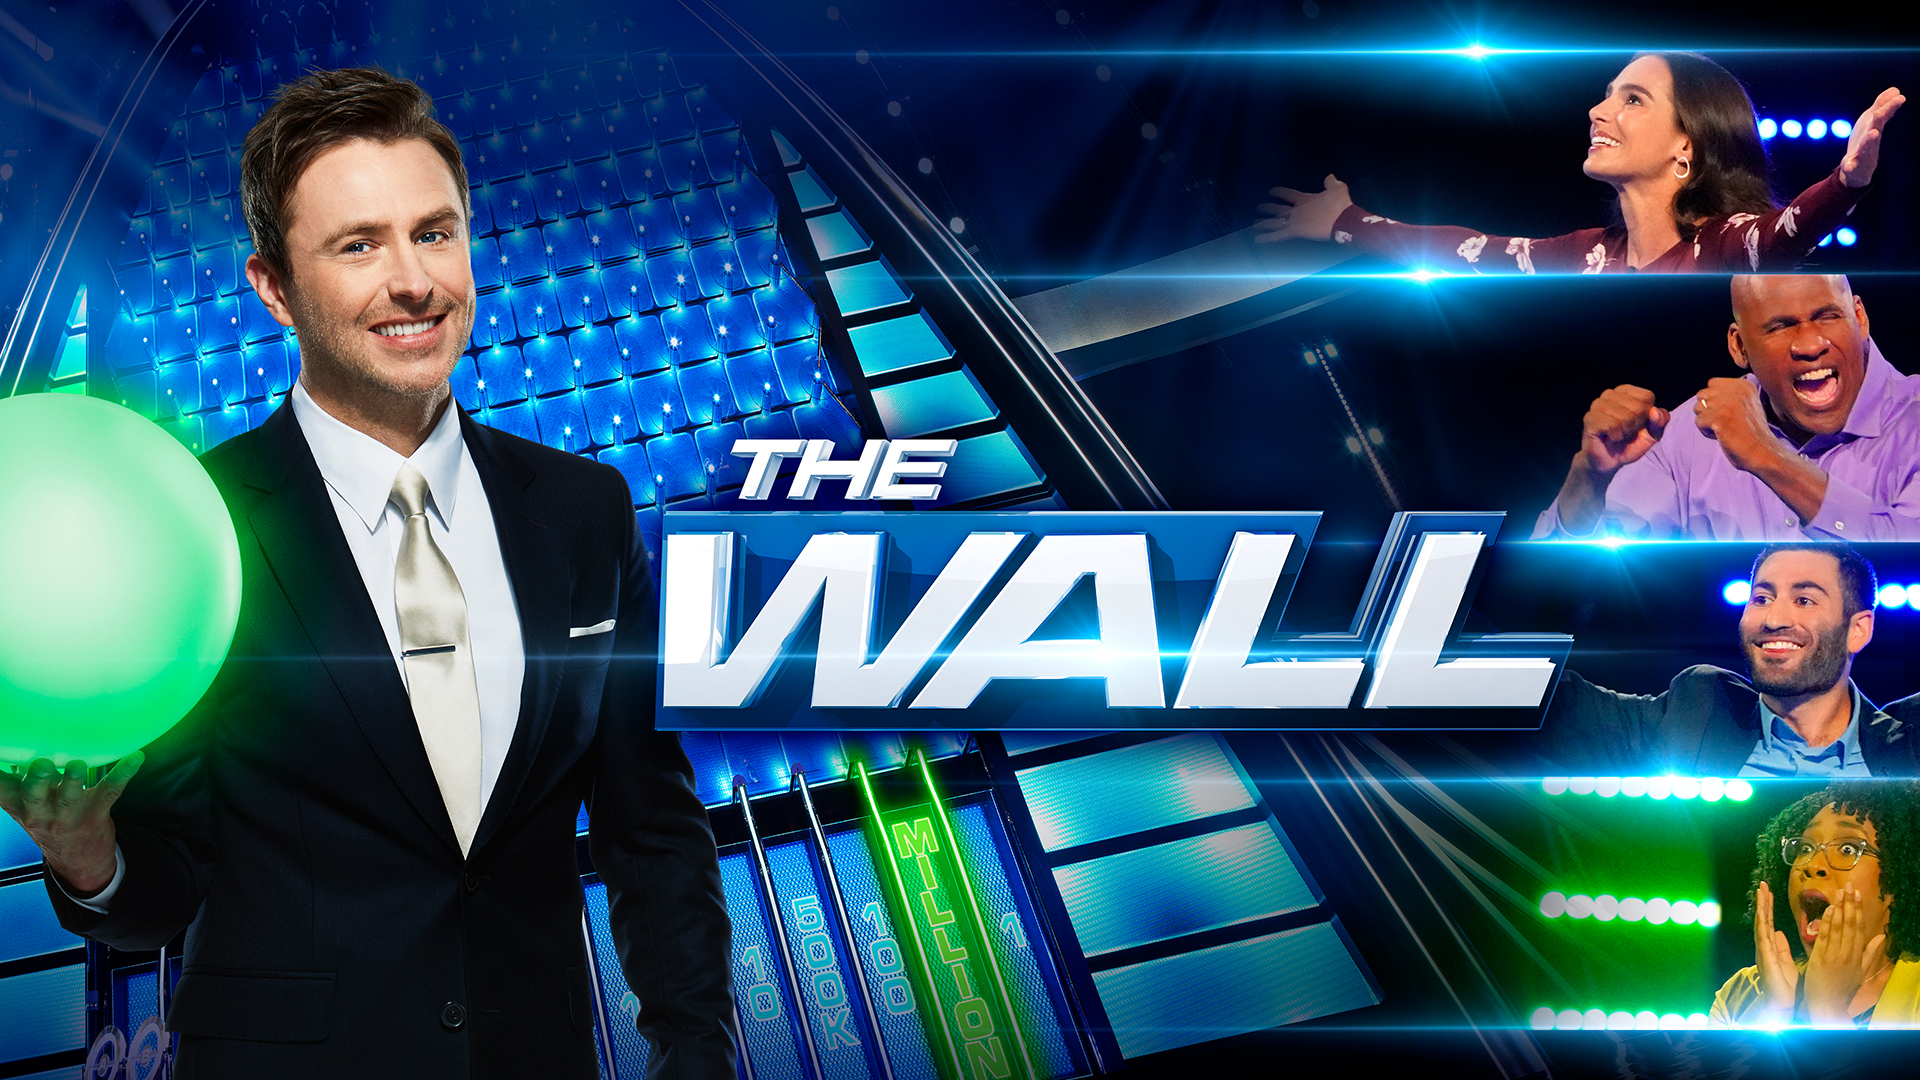 the wall sweepstakes nbc com watch the wall episodes nbc com 678